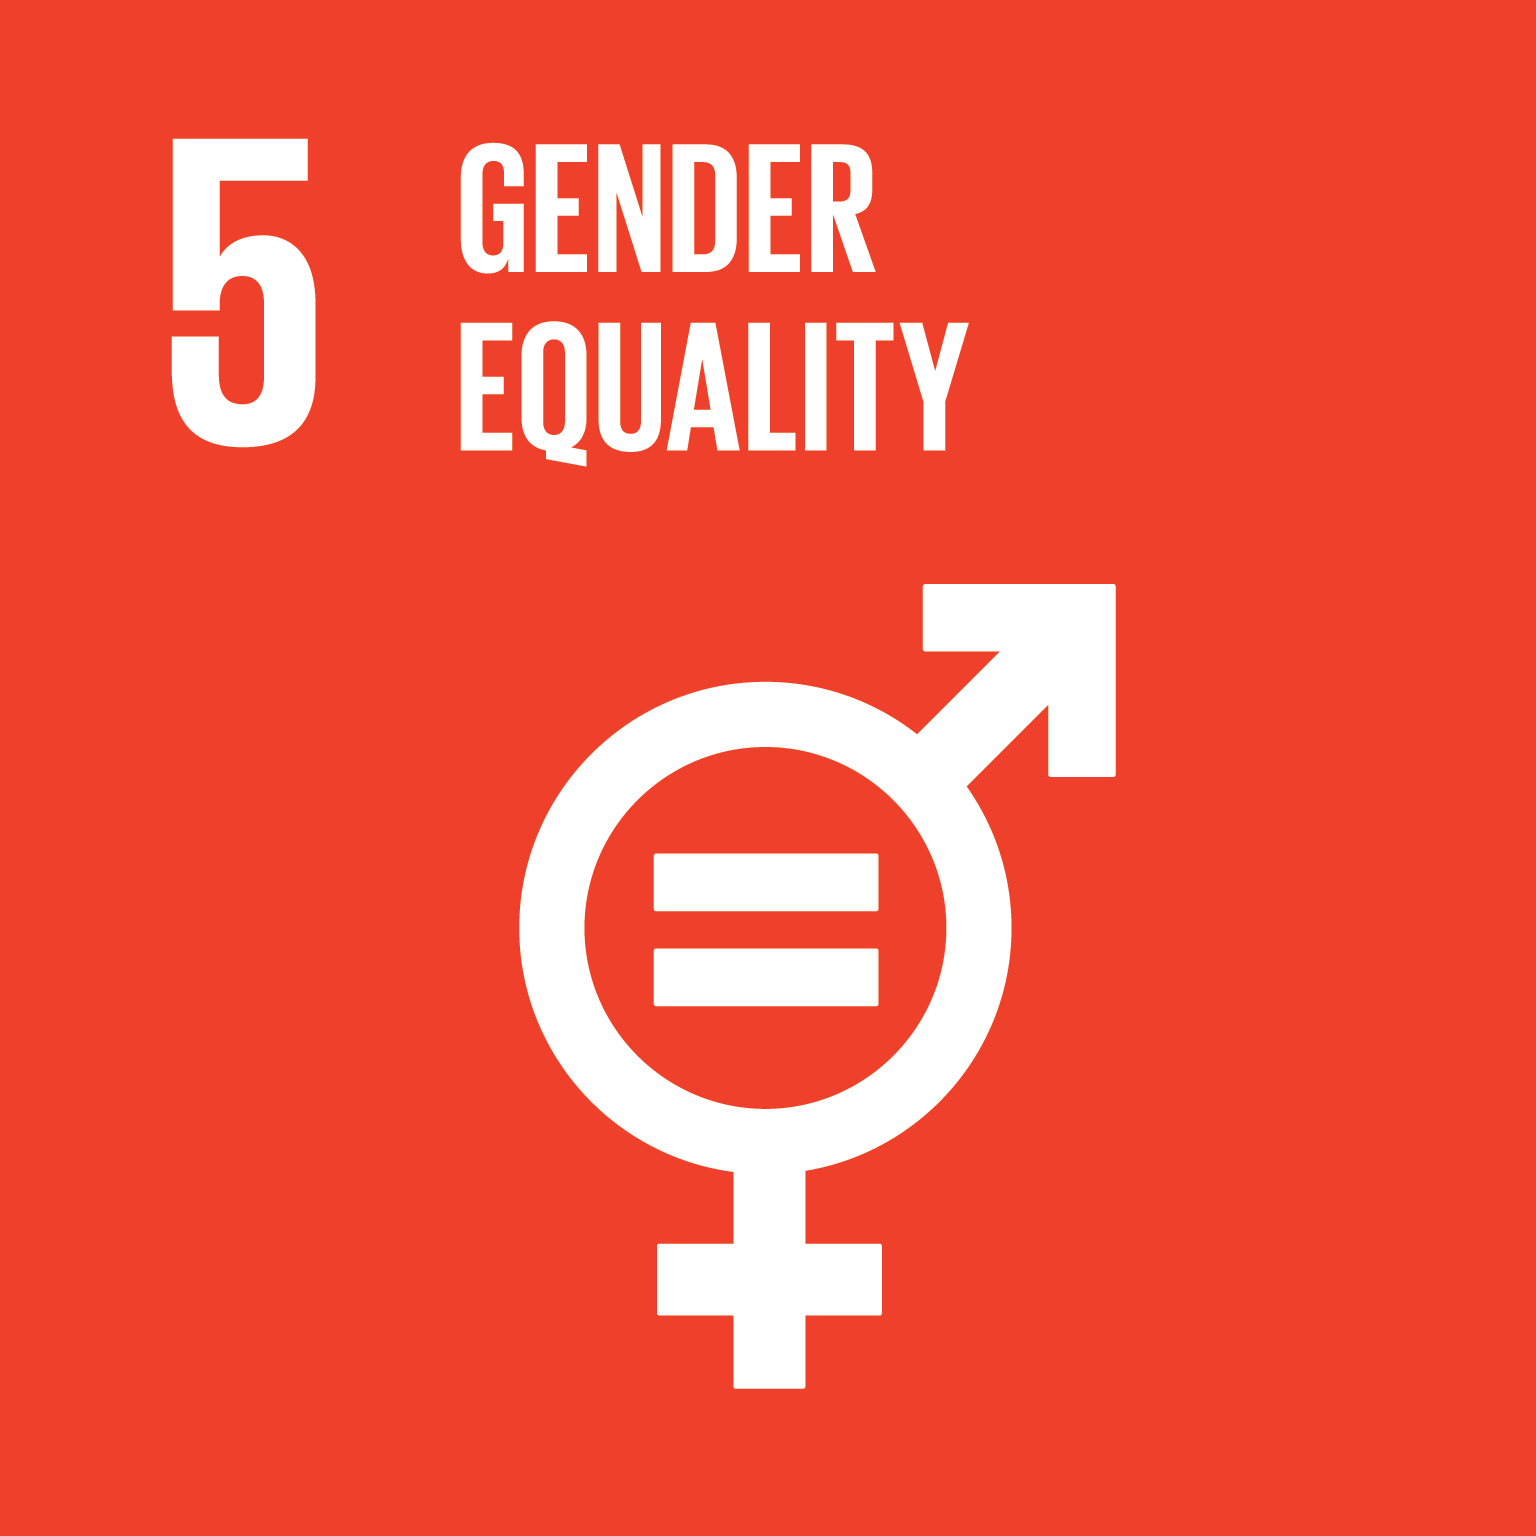 - The programmes we support ensure equal access to treatment, regardless of gender. Read more about our impact.